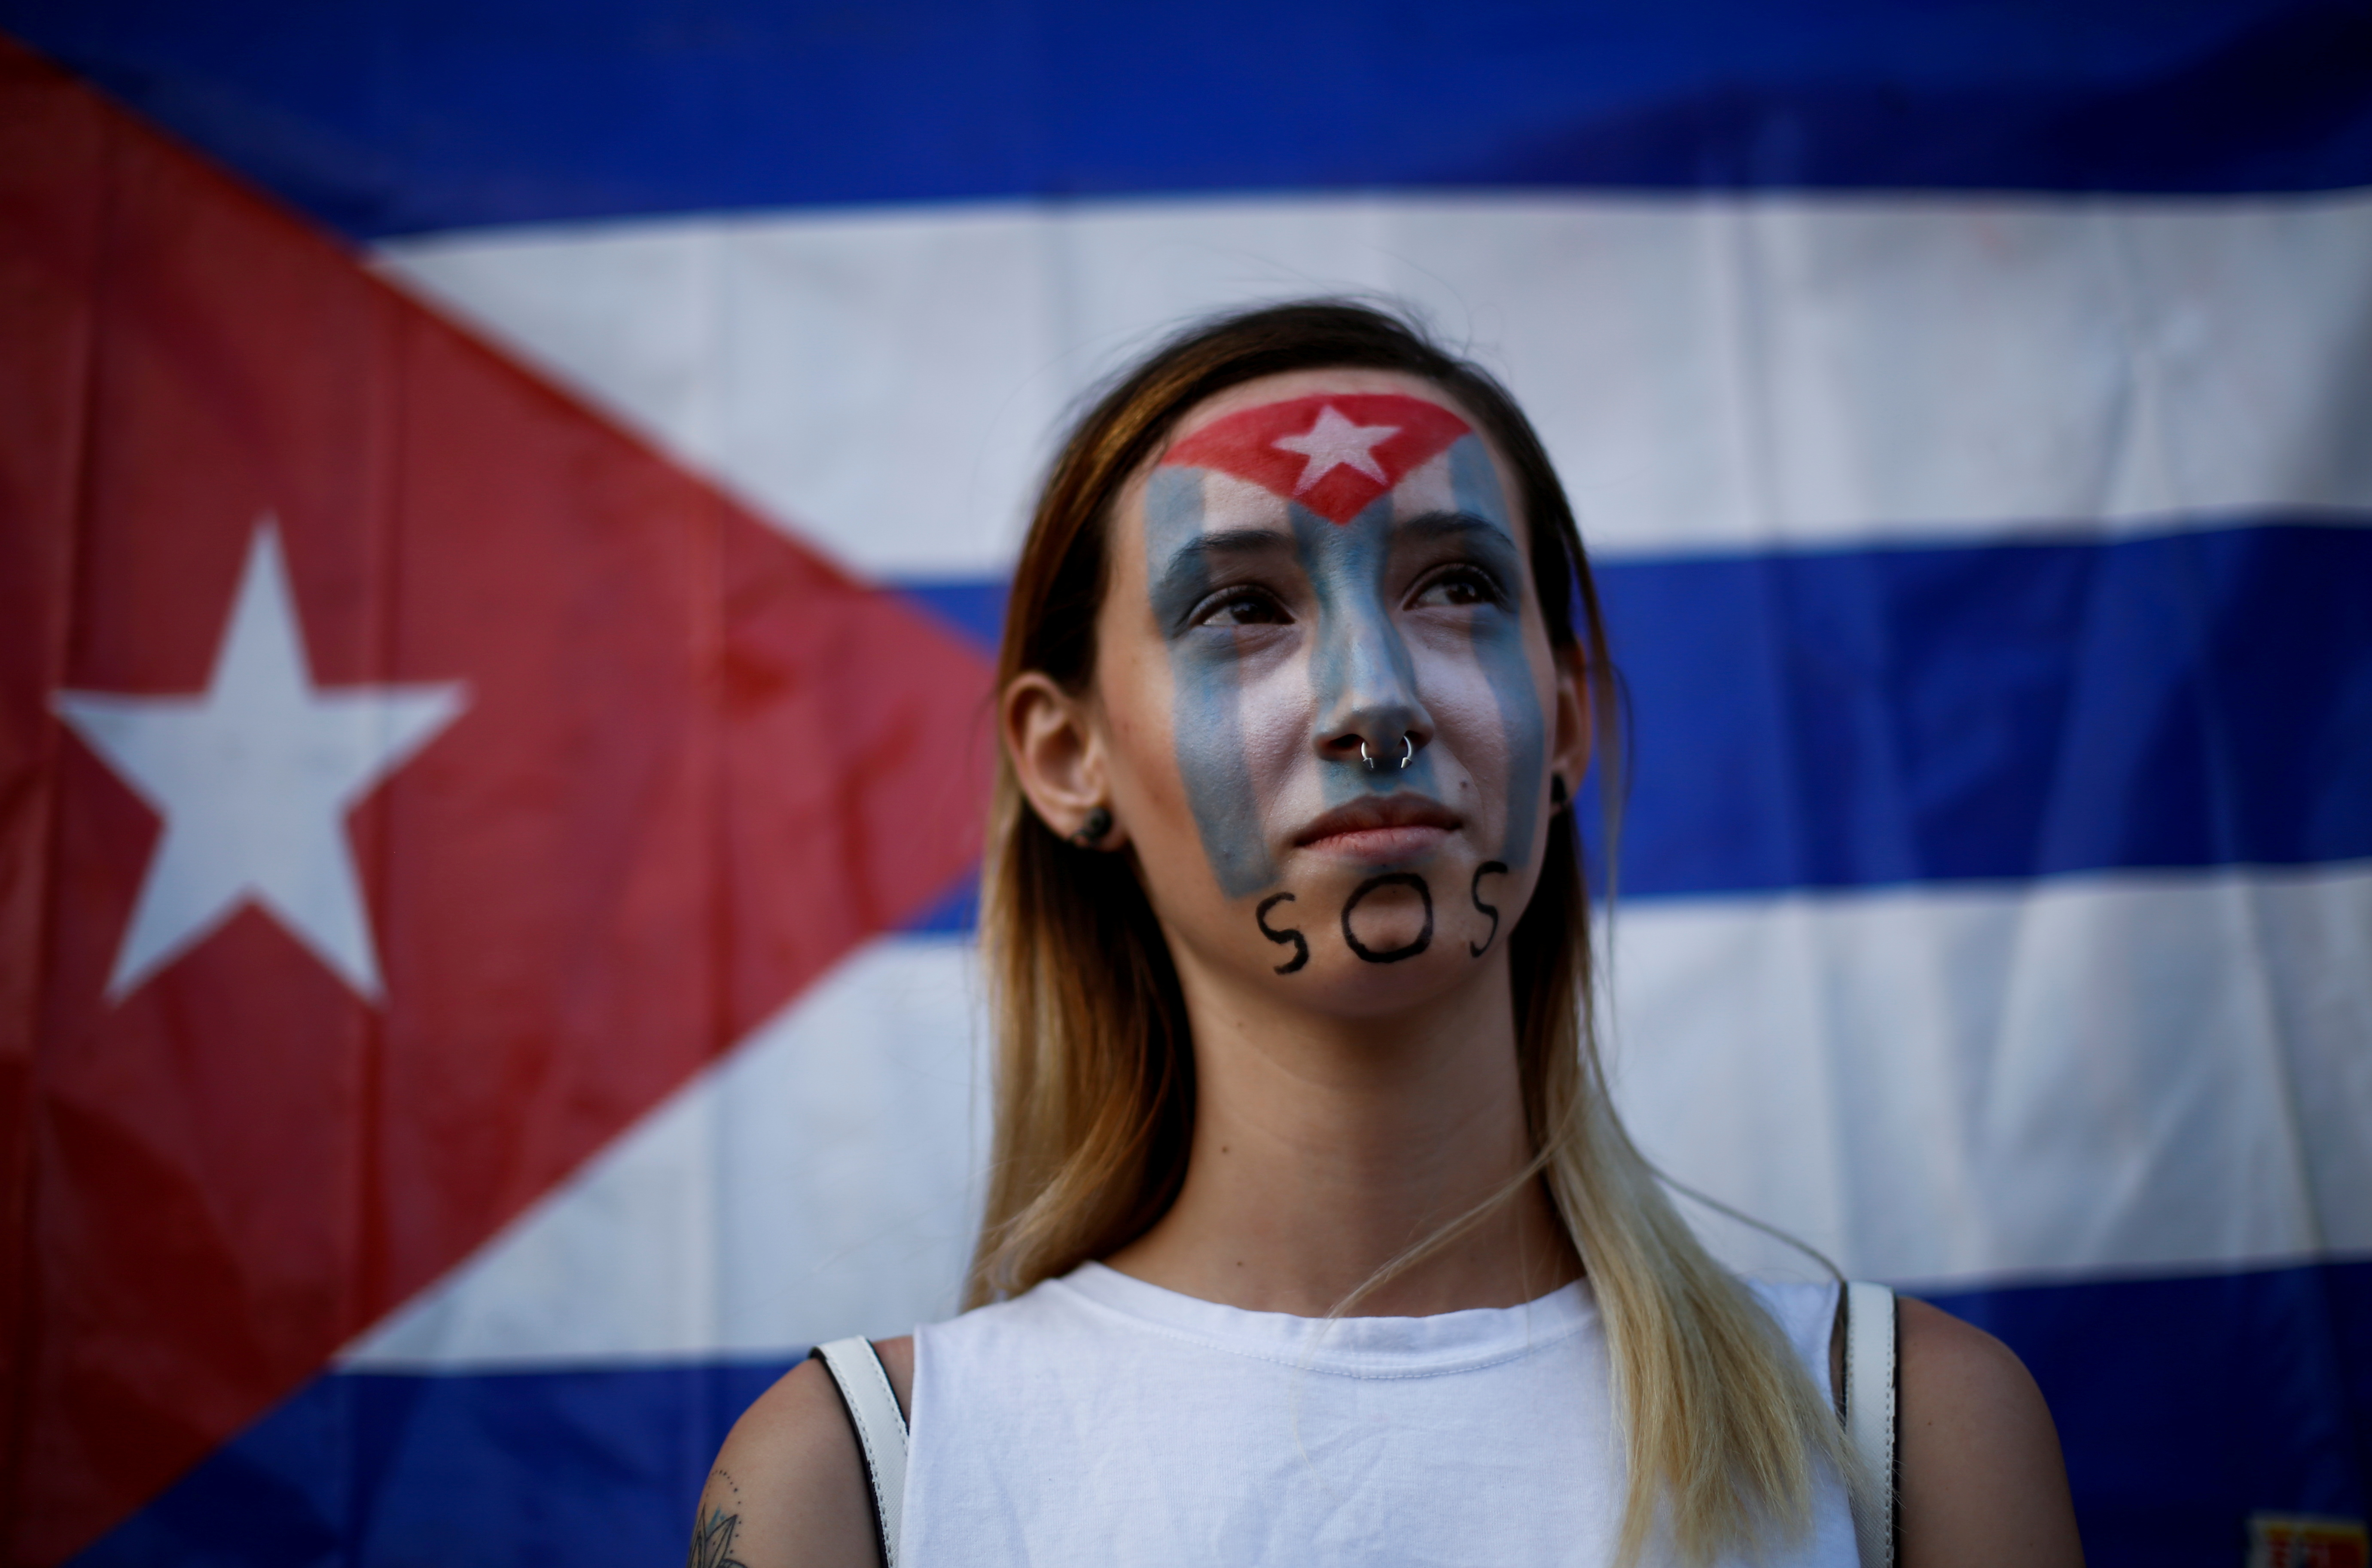 Anilet Ramirez from Cuba takes part in a protest against the Cuban government in front of the offices of the International Organization for Migration (IOM) in Ciudad Juarez, Mexico July 12, 2021. REUTERS/Jose Luis Gonzalez/File Photo